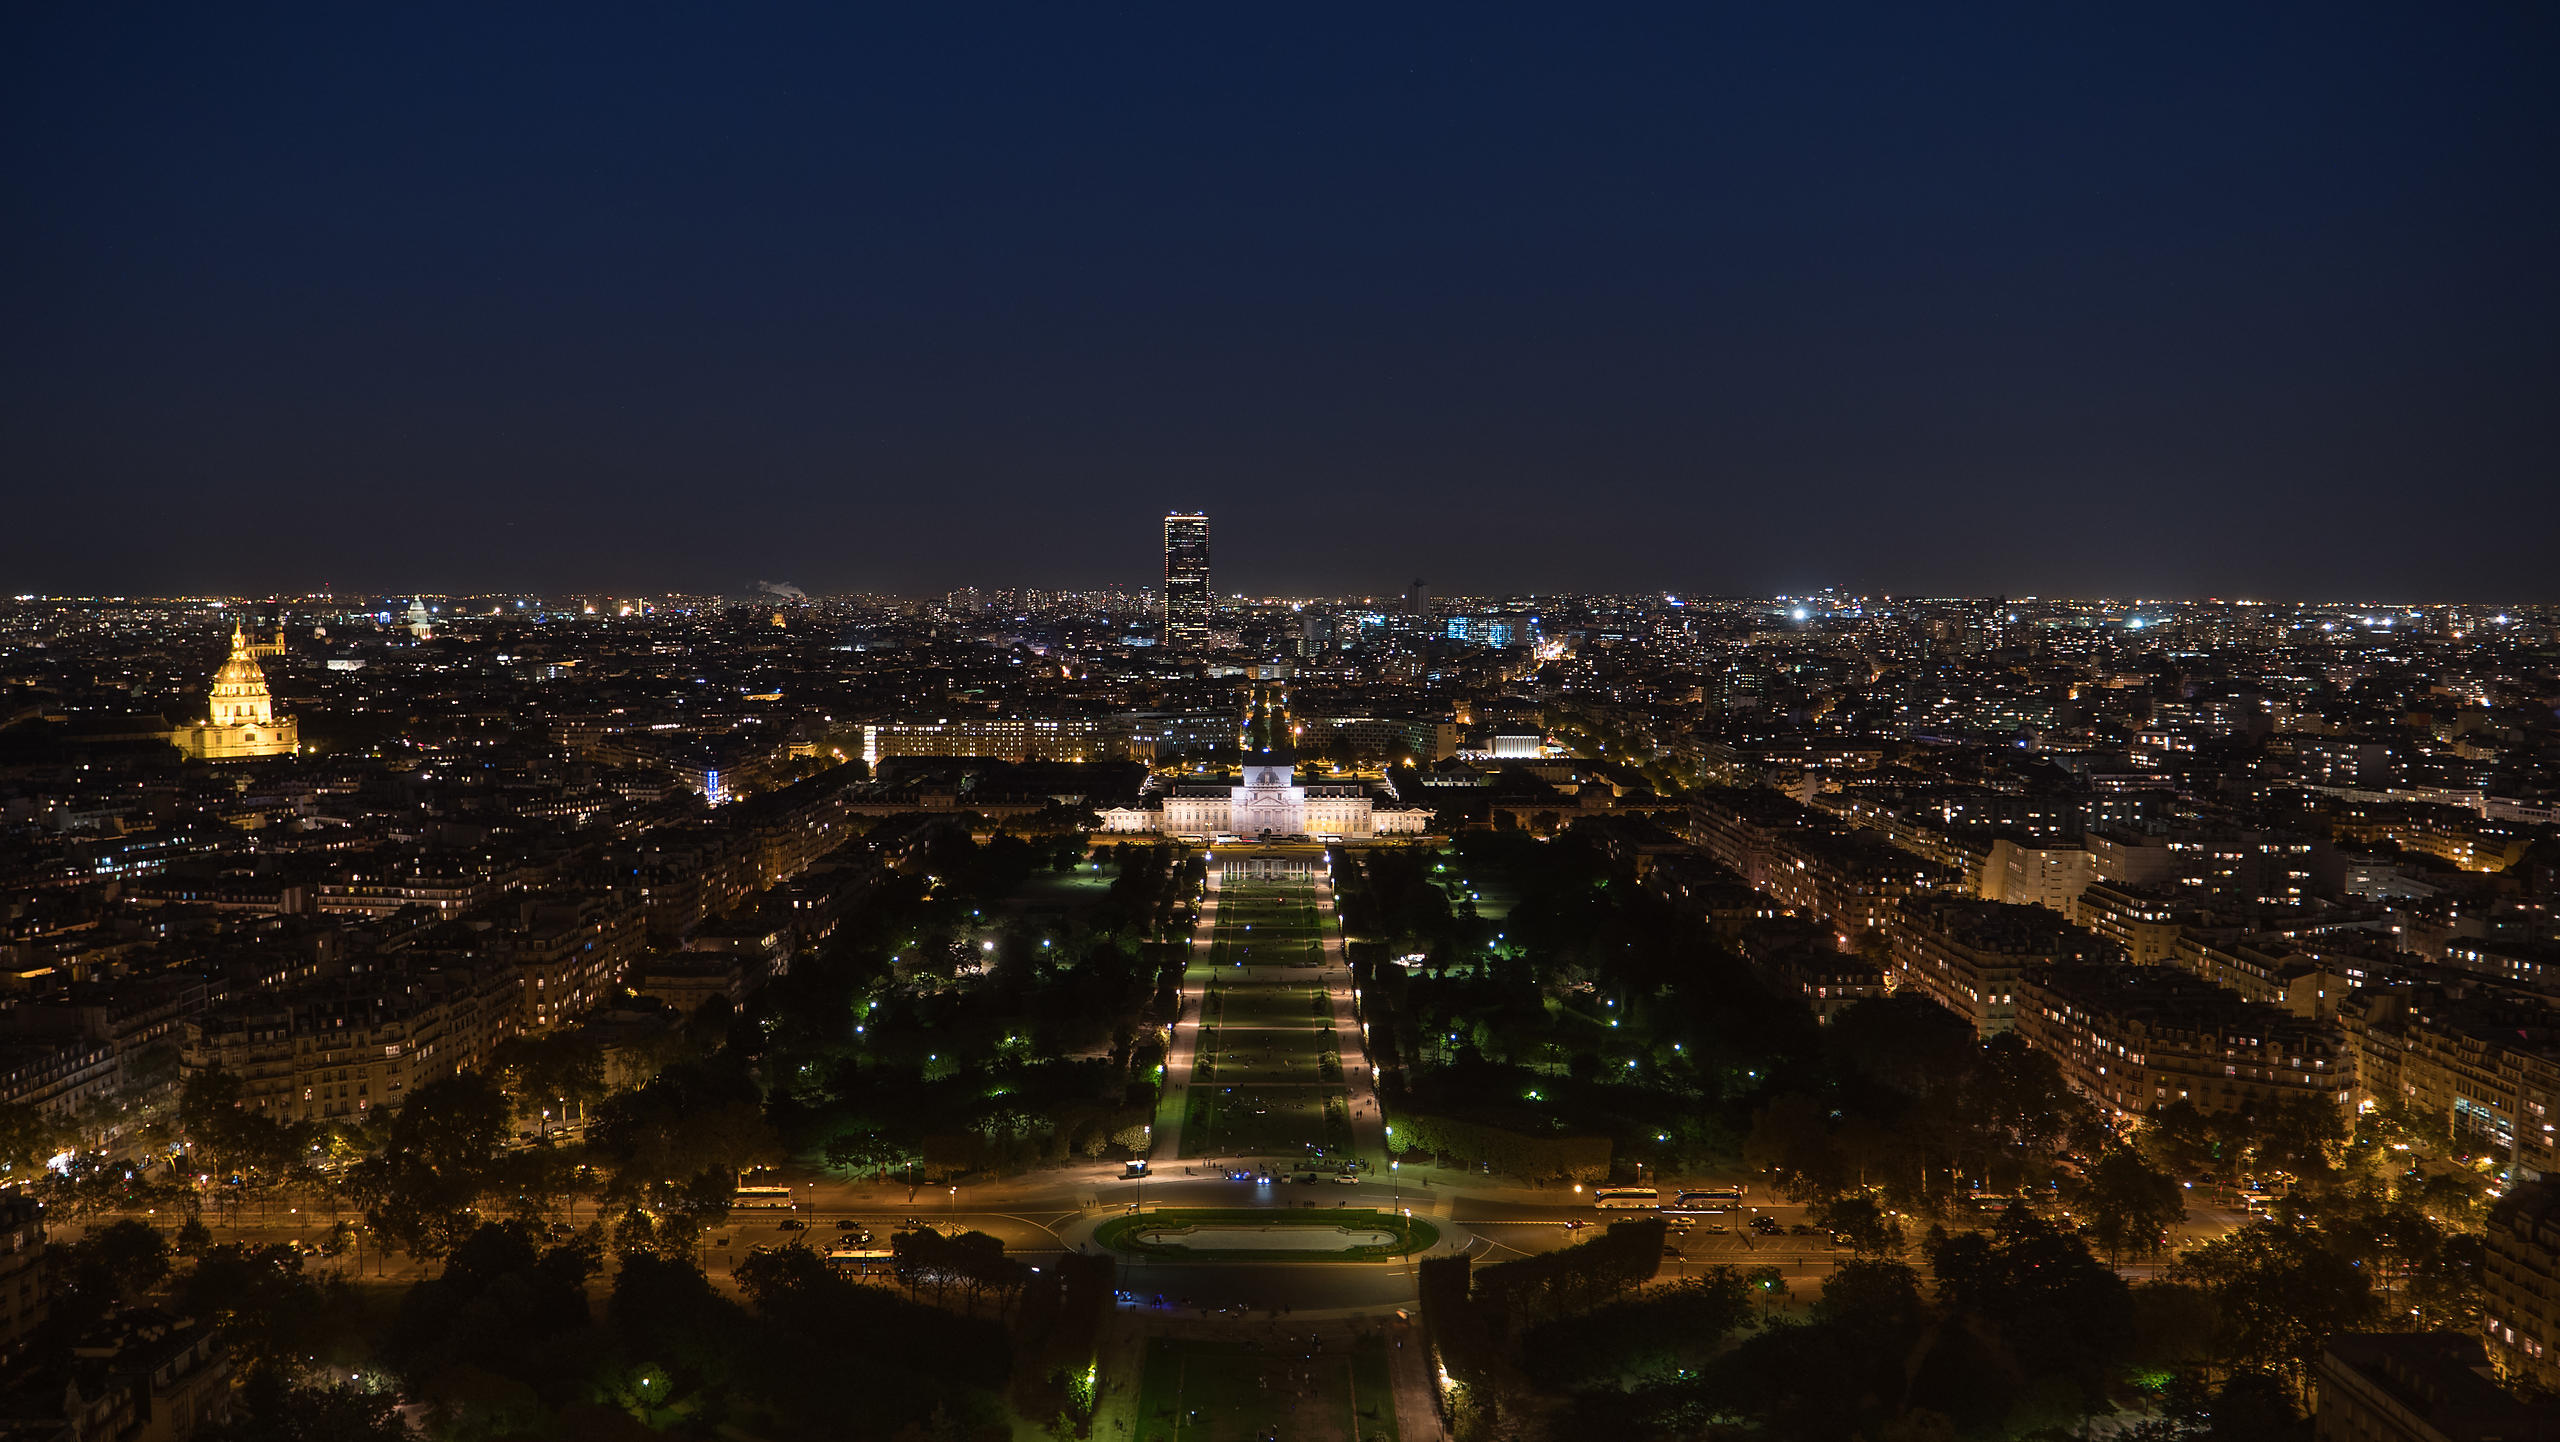 Aerial View of Paris at Night With Illuminations